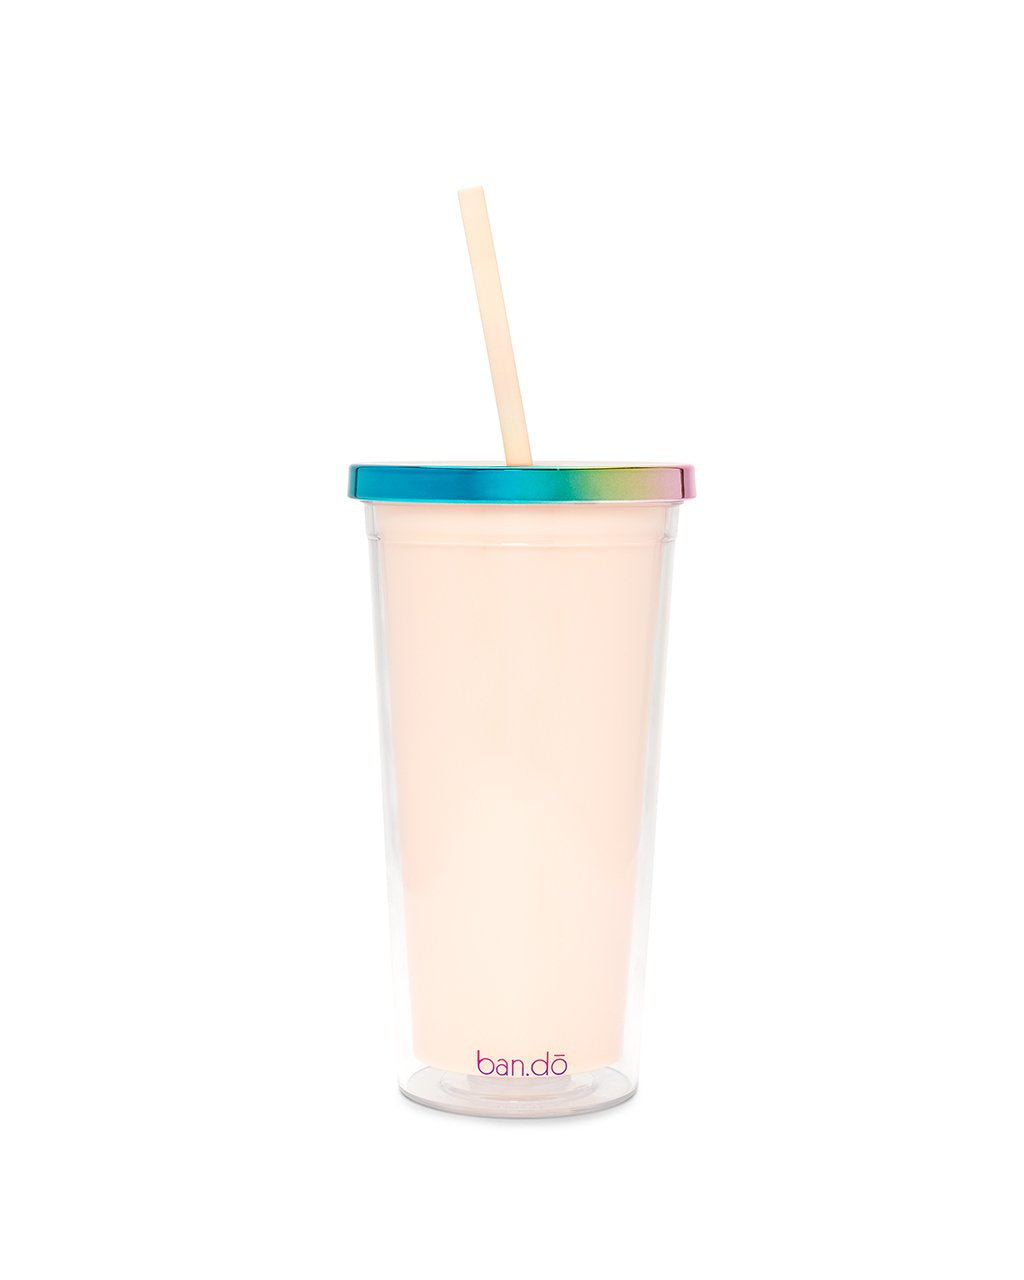 Ban.Do deluxe sip sip tumbler w/straw - optimism